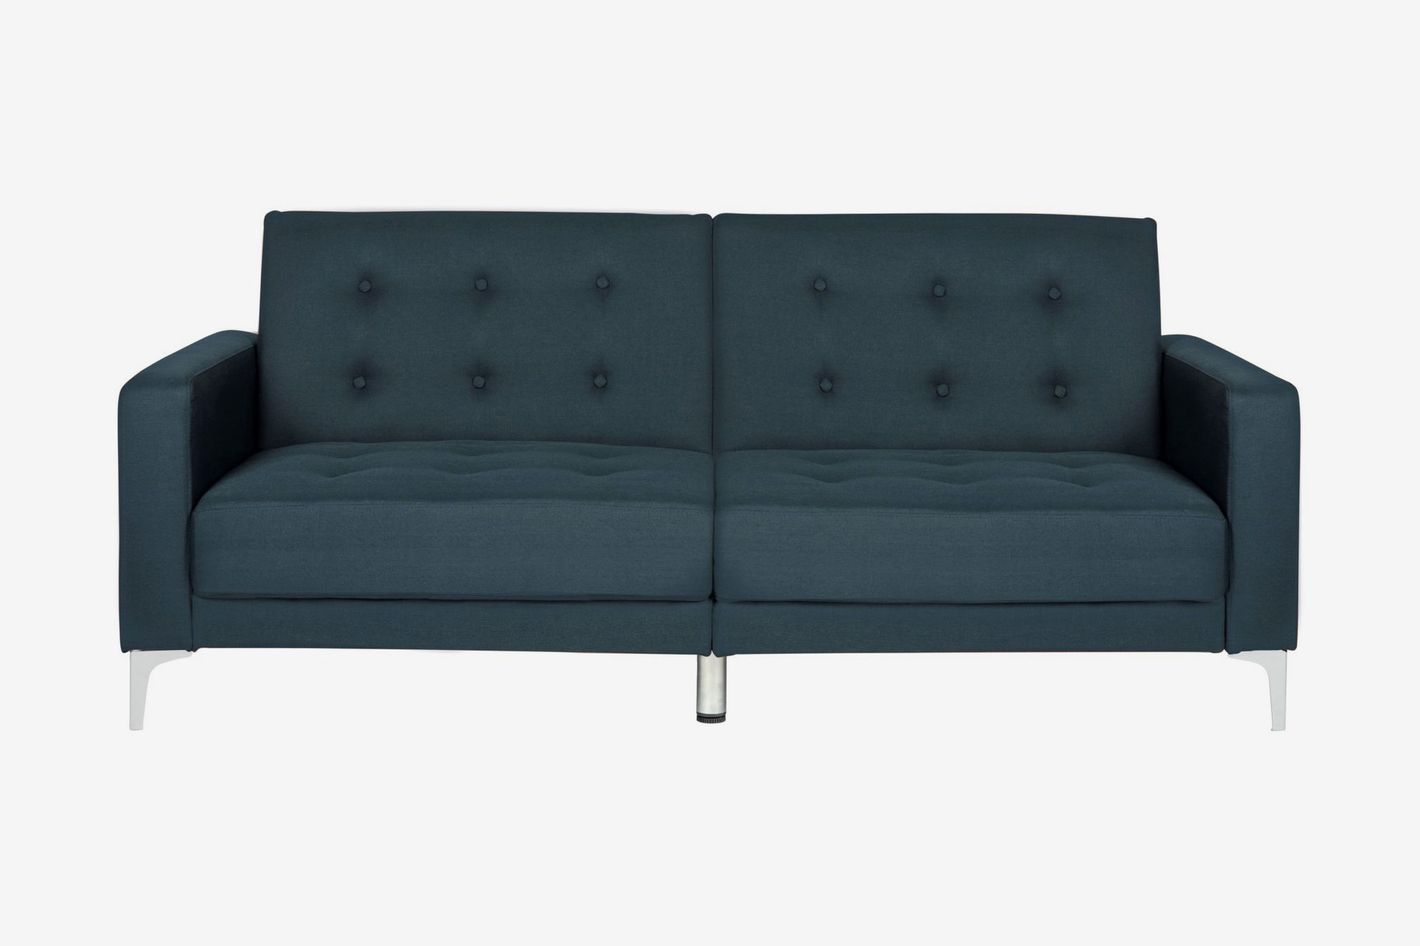 18 Best Sleeper Sofas Sofa Beds And Pullout Couches 2018